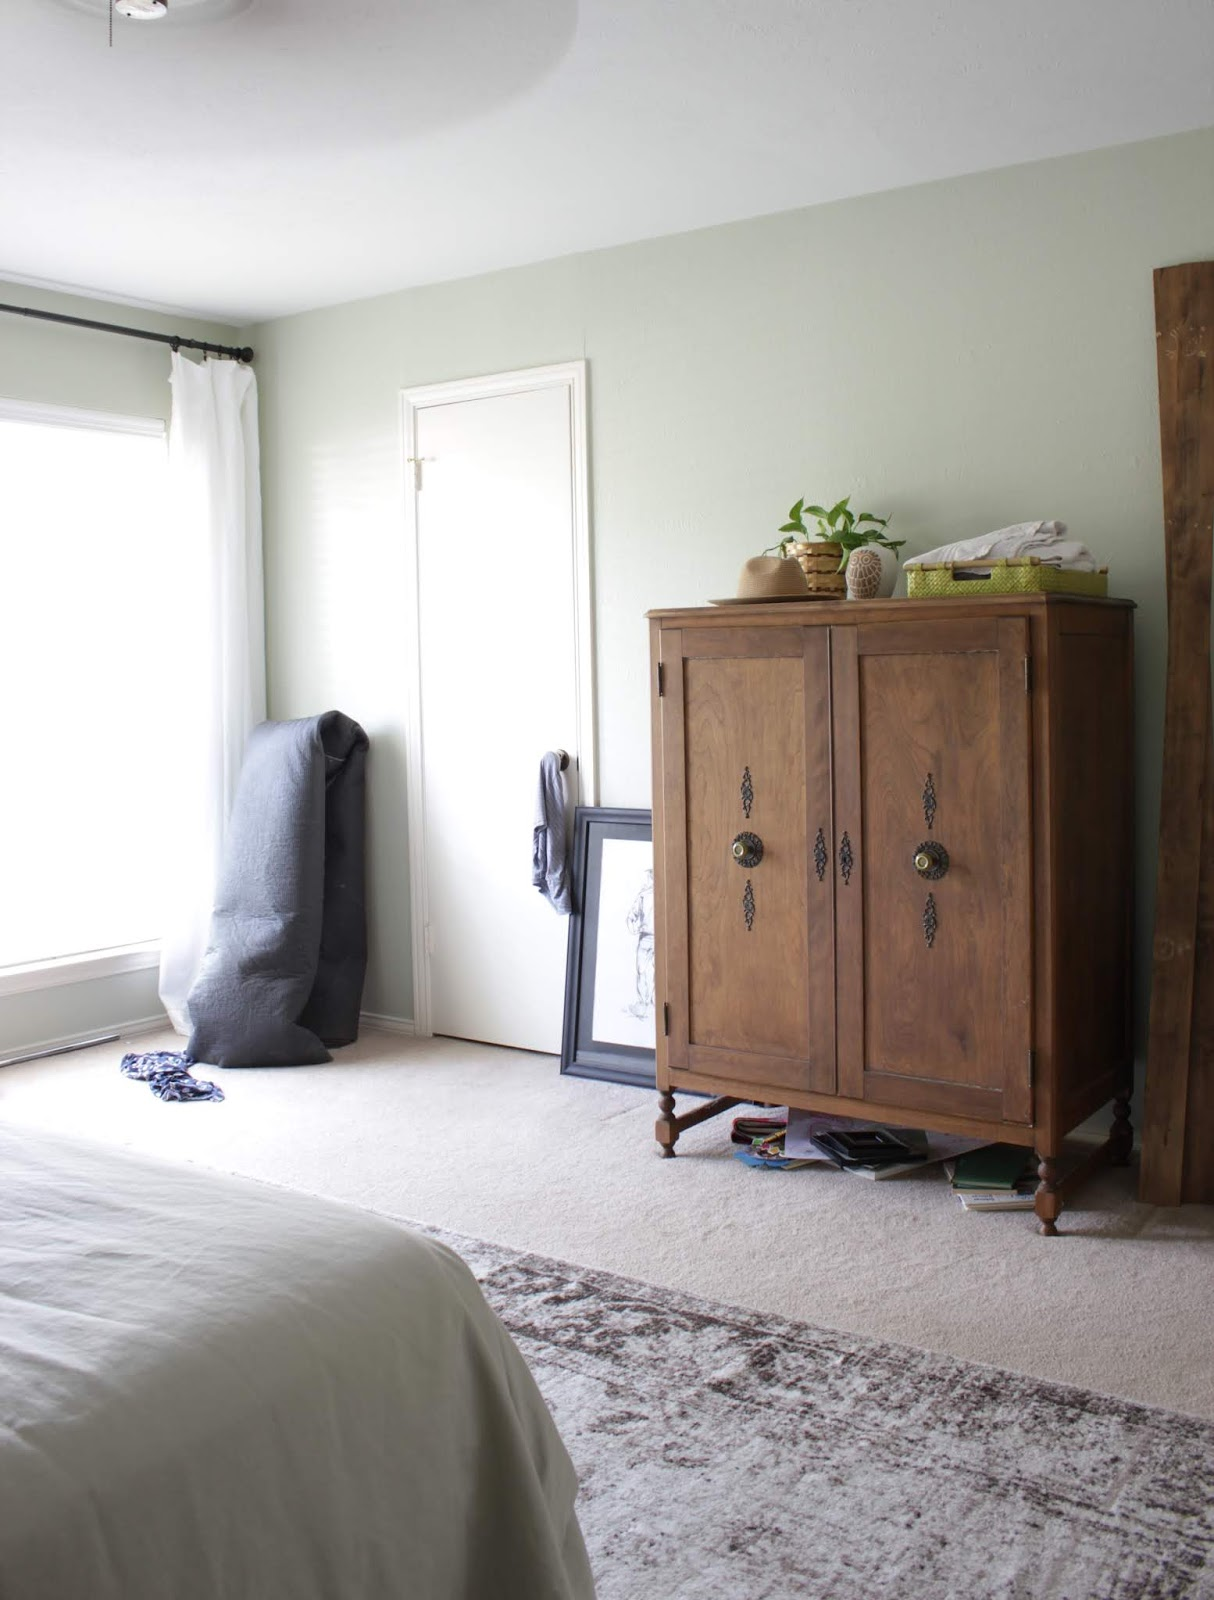 House Homemade new house tour: 3 weeks later